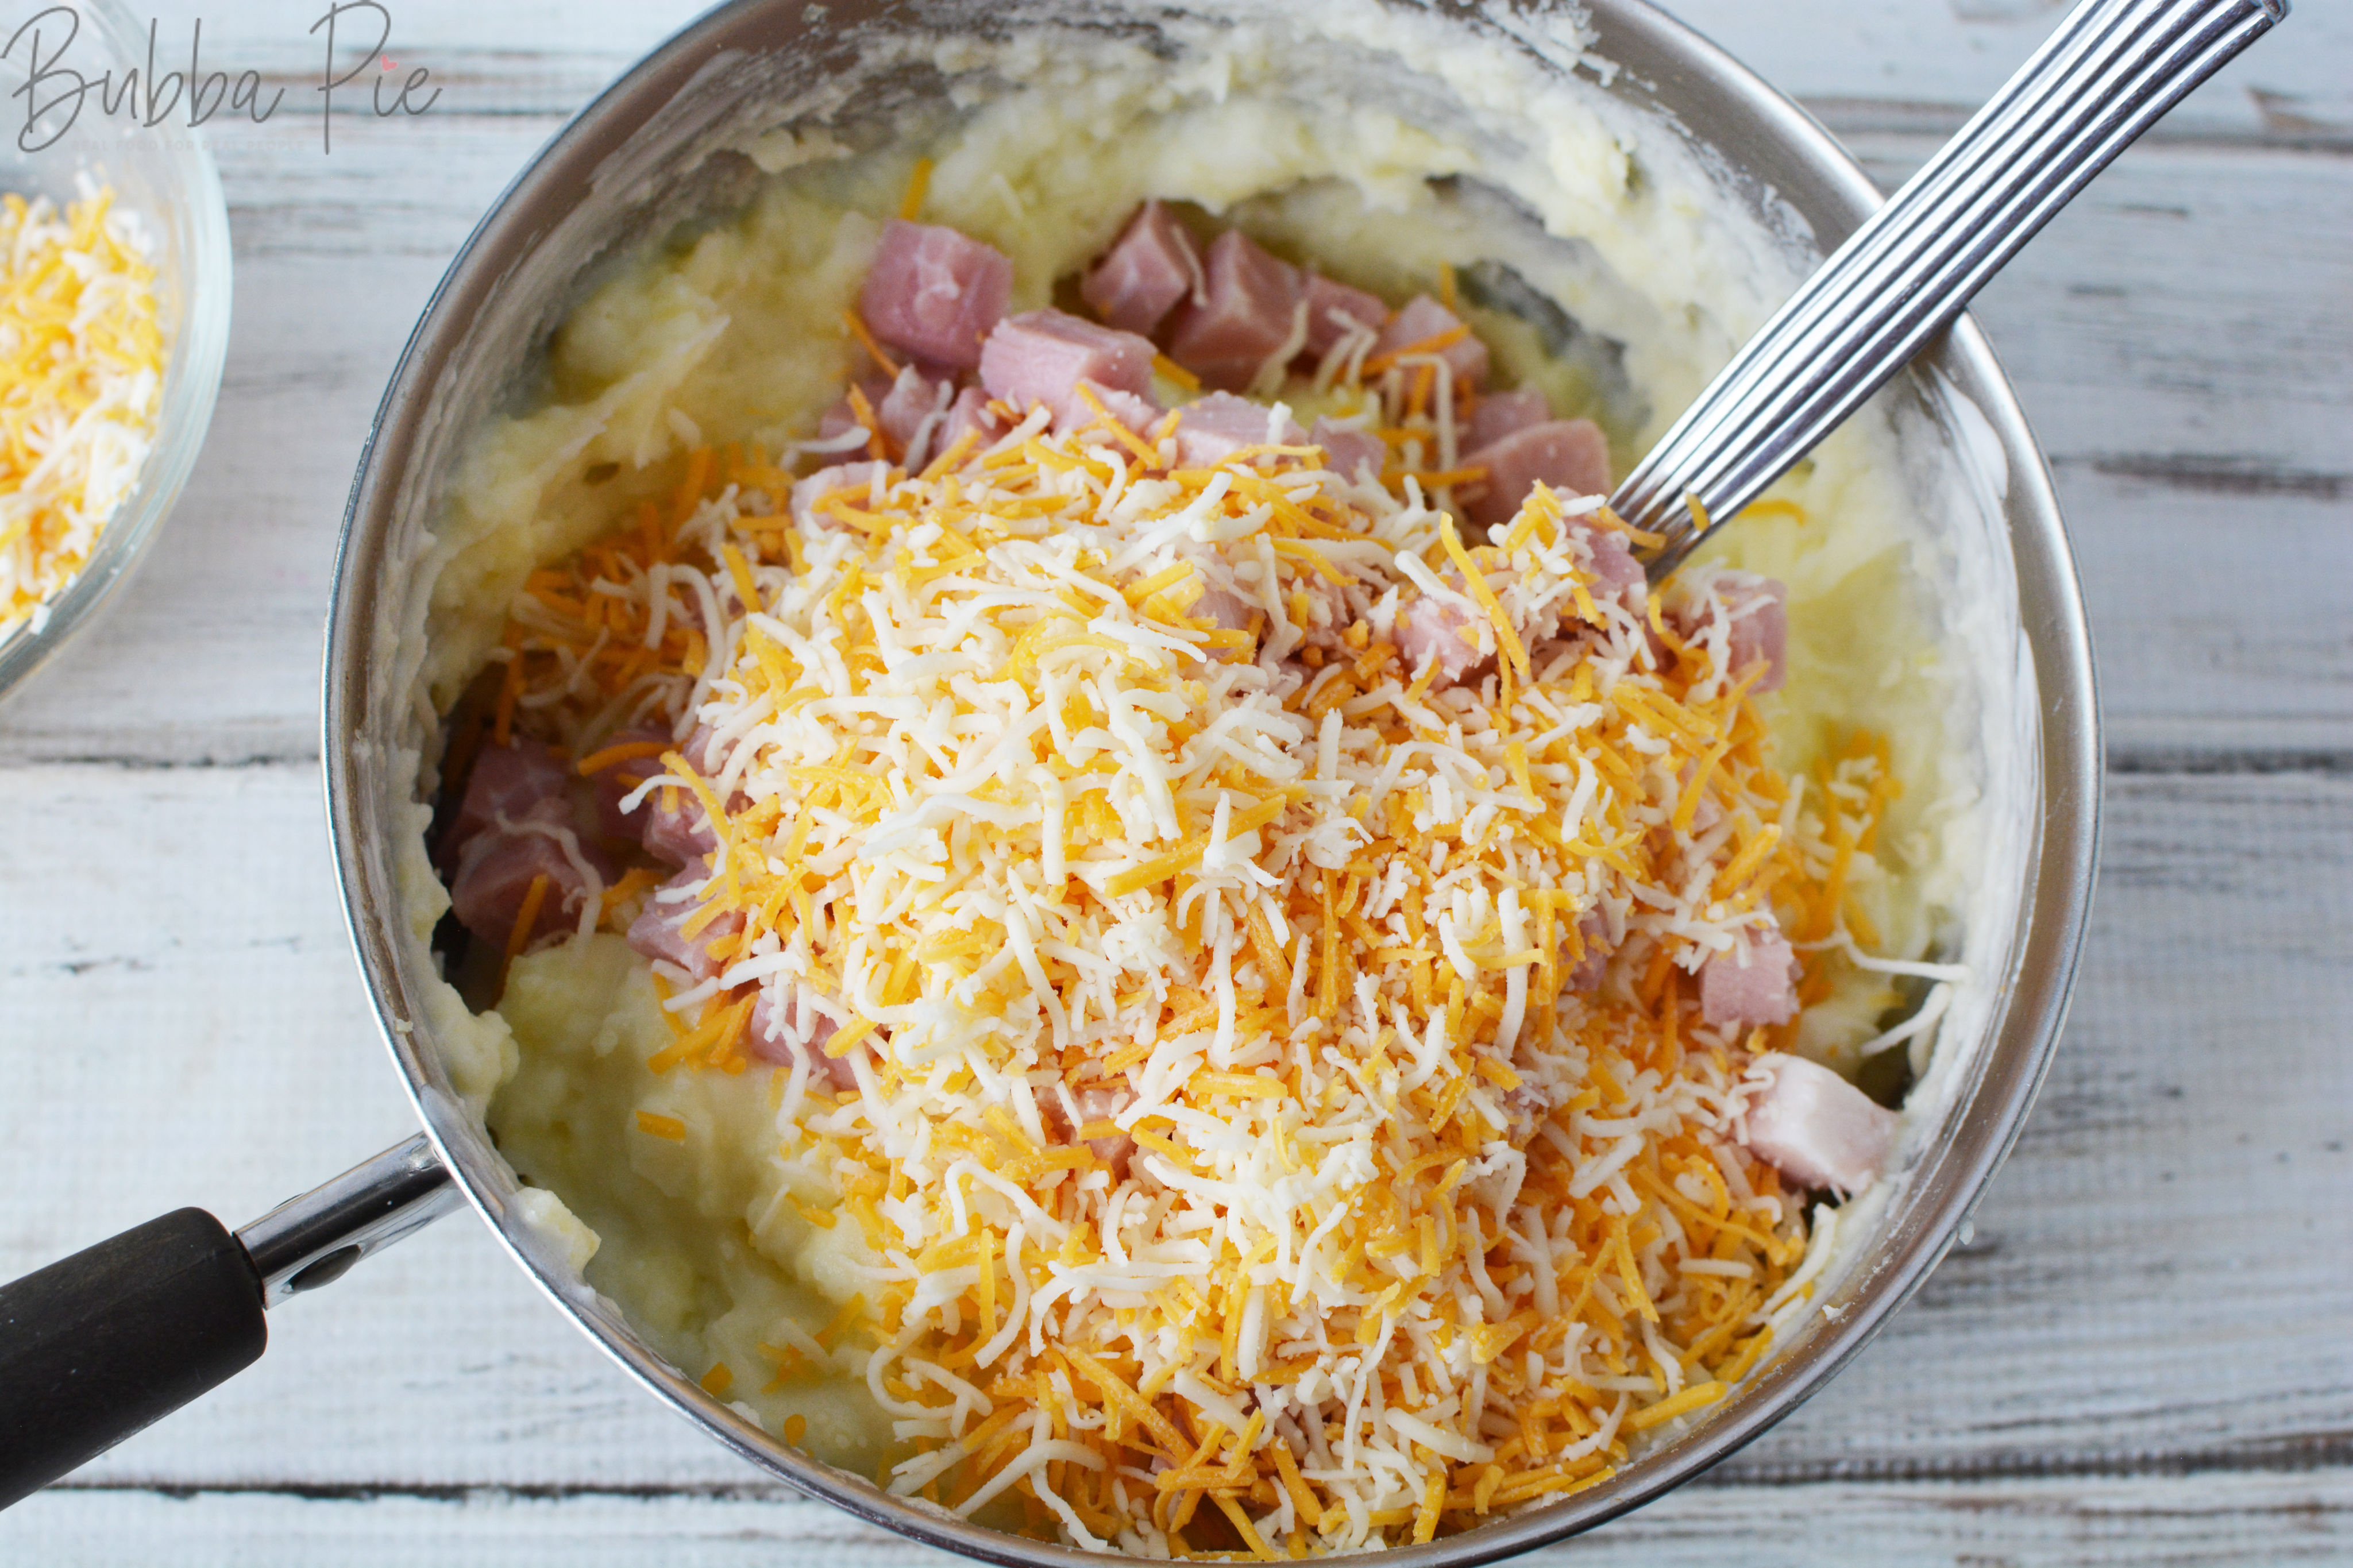 twice baked mashed potato casserole ingredients include colby jack cheese, ham and onions